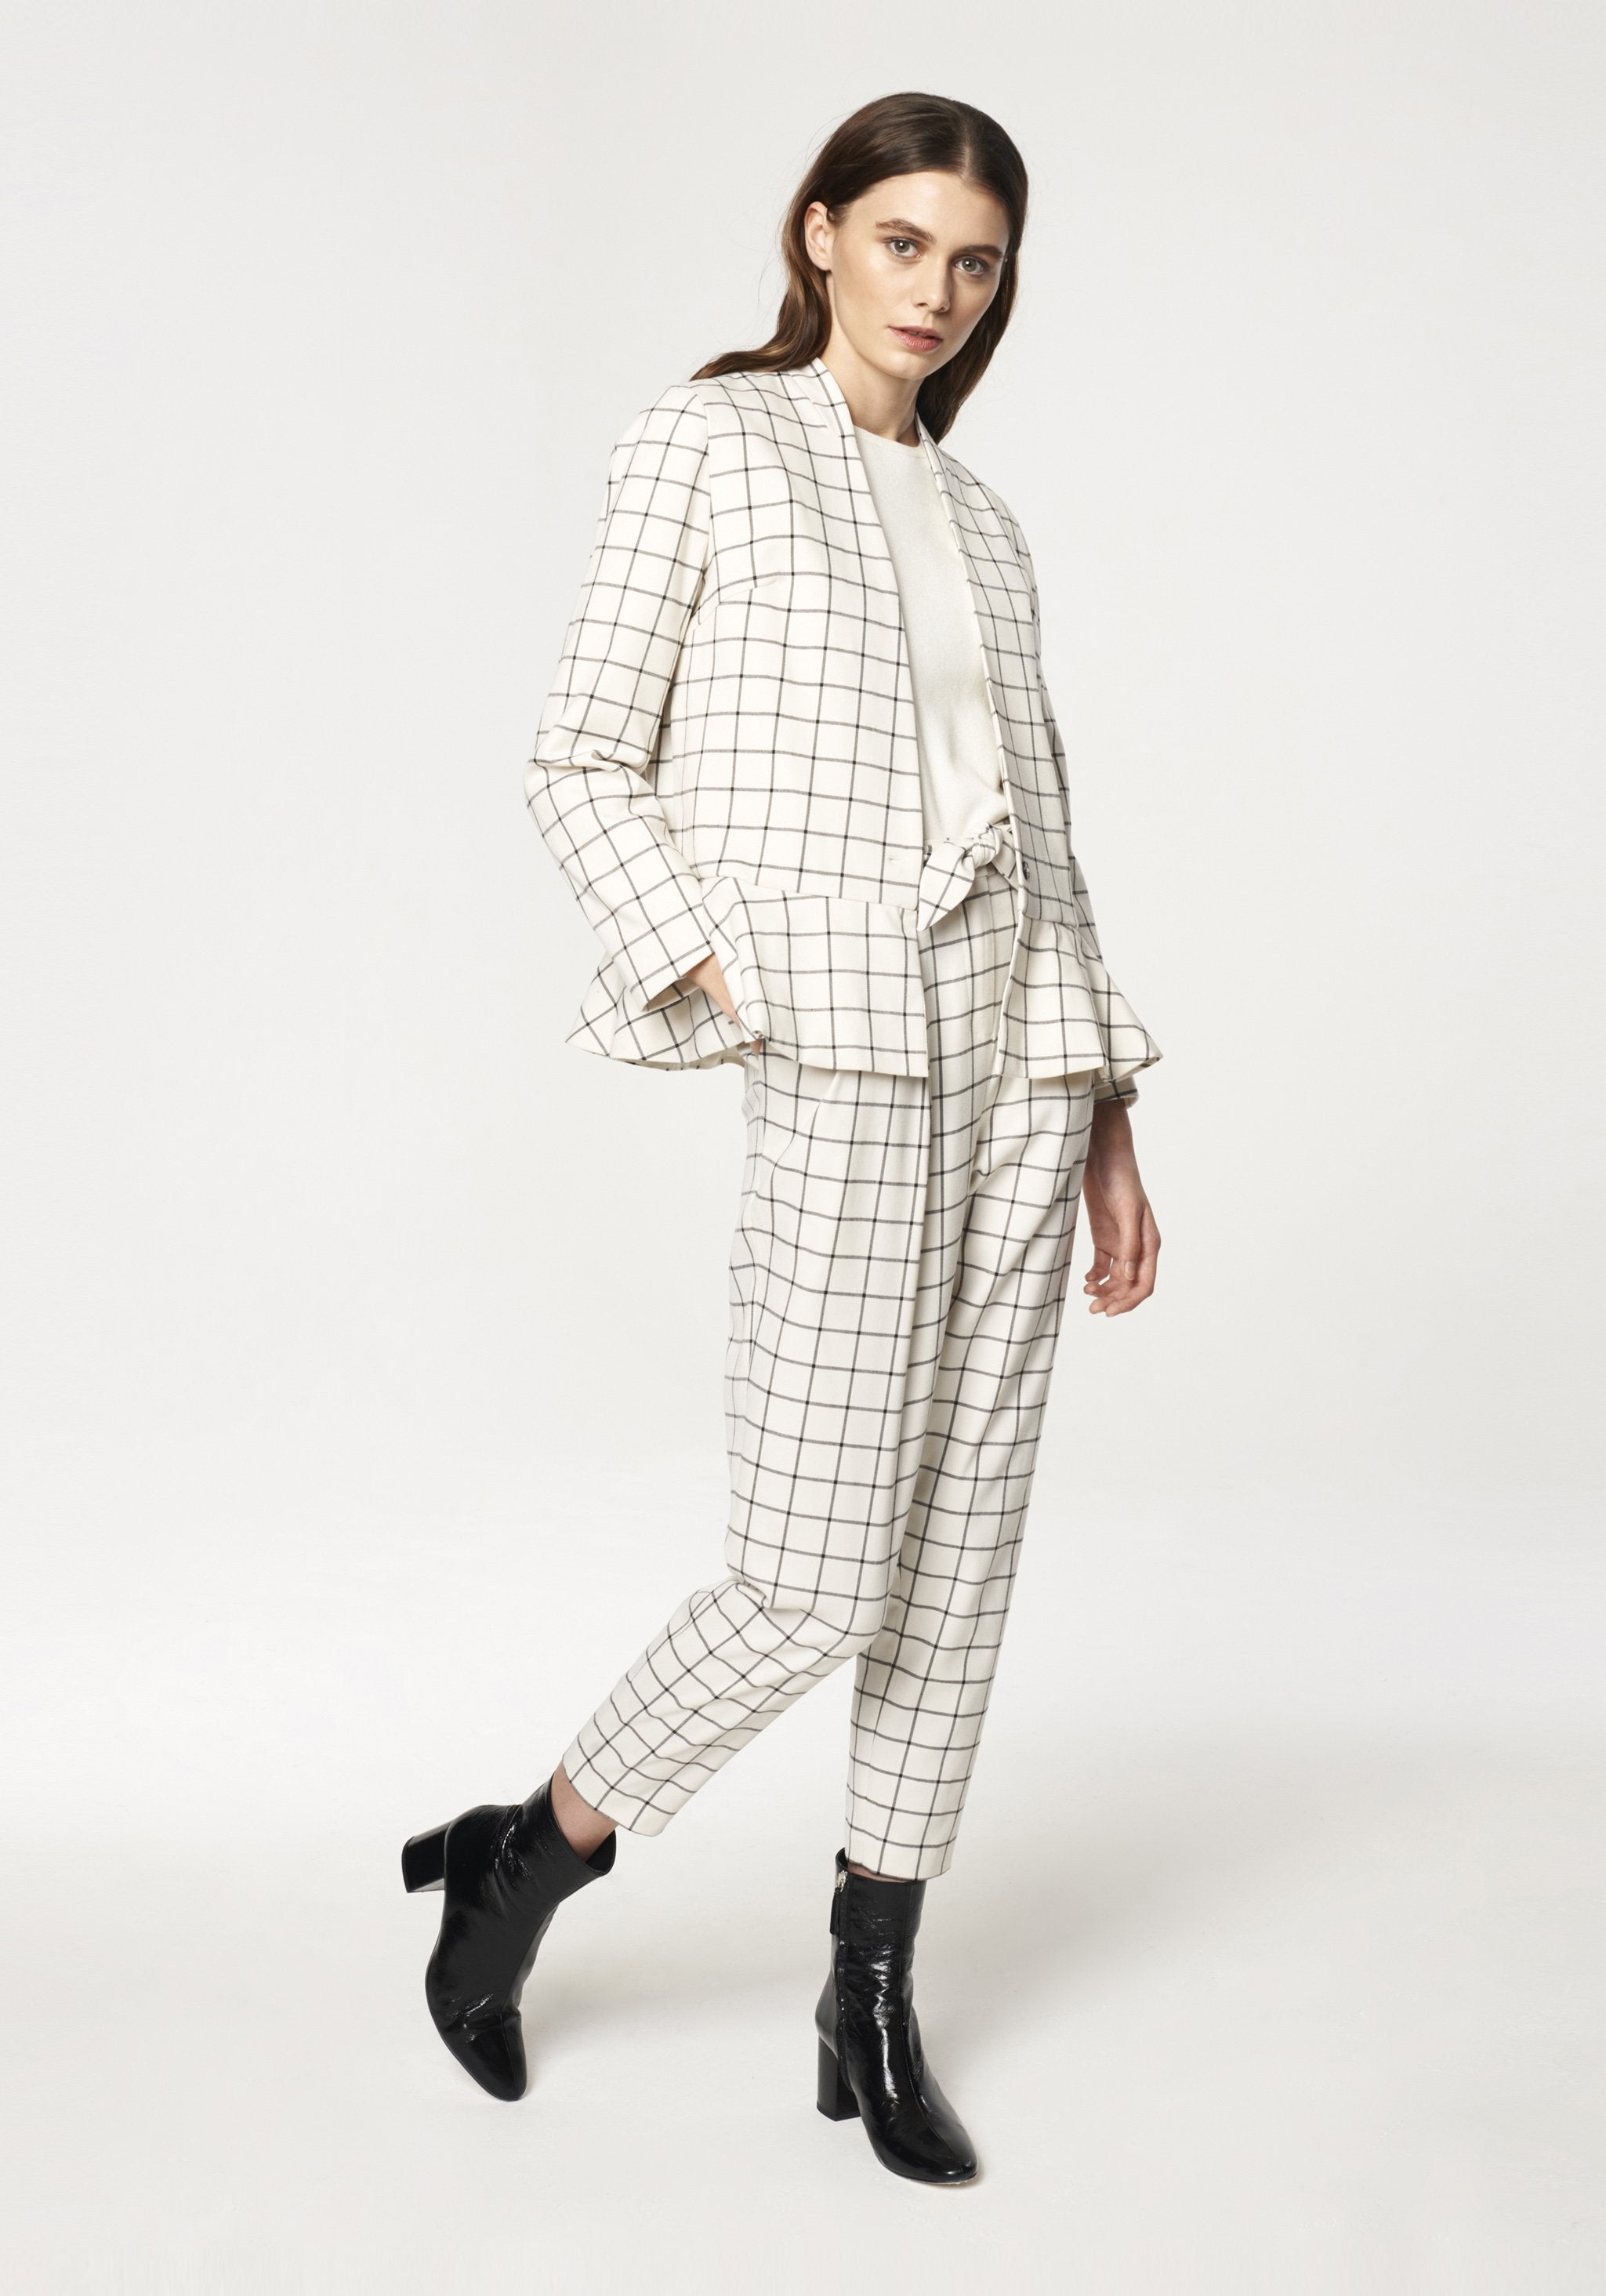 Checked V Neck Blazer with Peplum Hem in White and Black by Paisie on OOSTOR.com